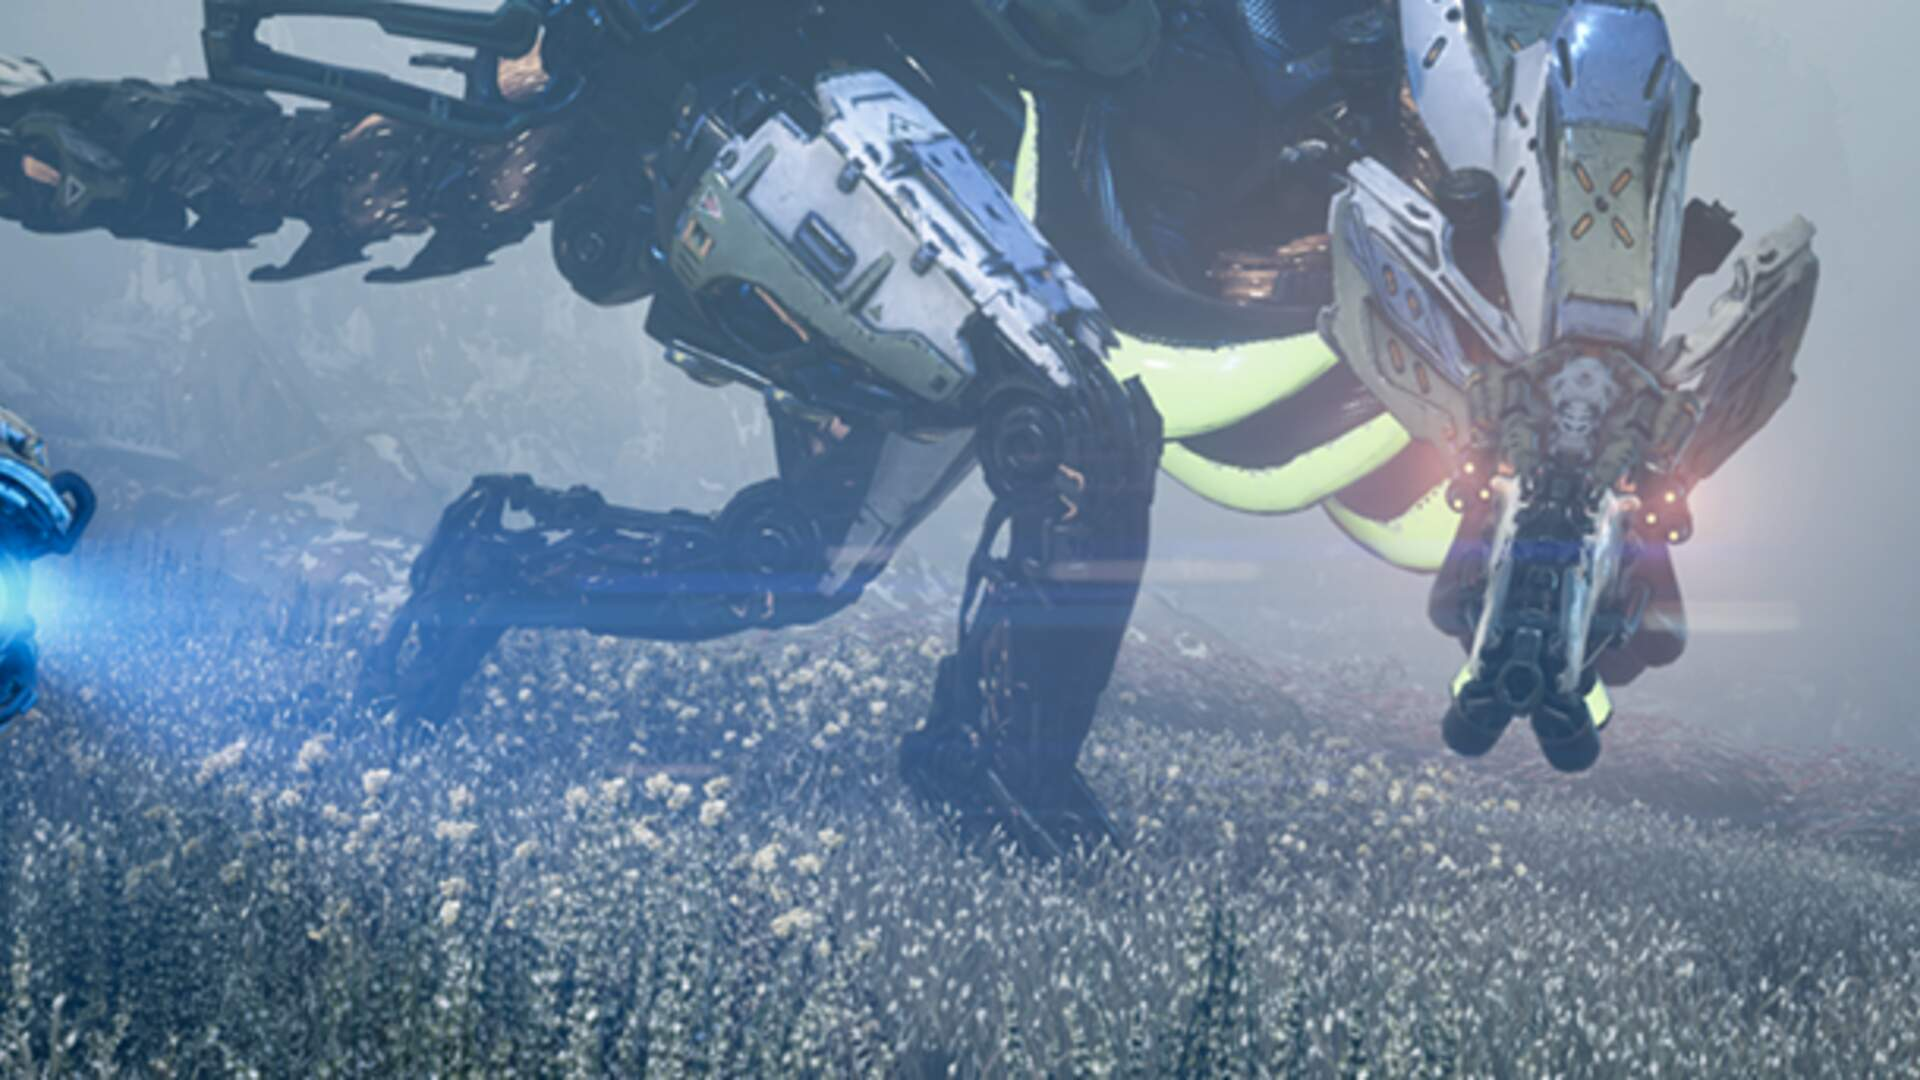 Guerrilla Games Wants to Release Games Every Two to Three Years